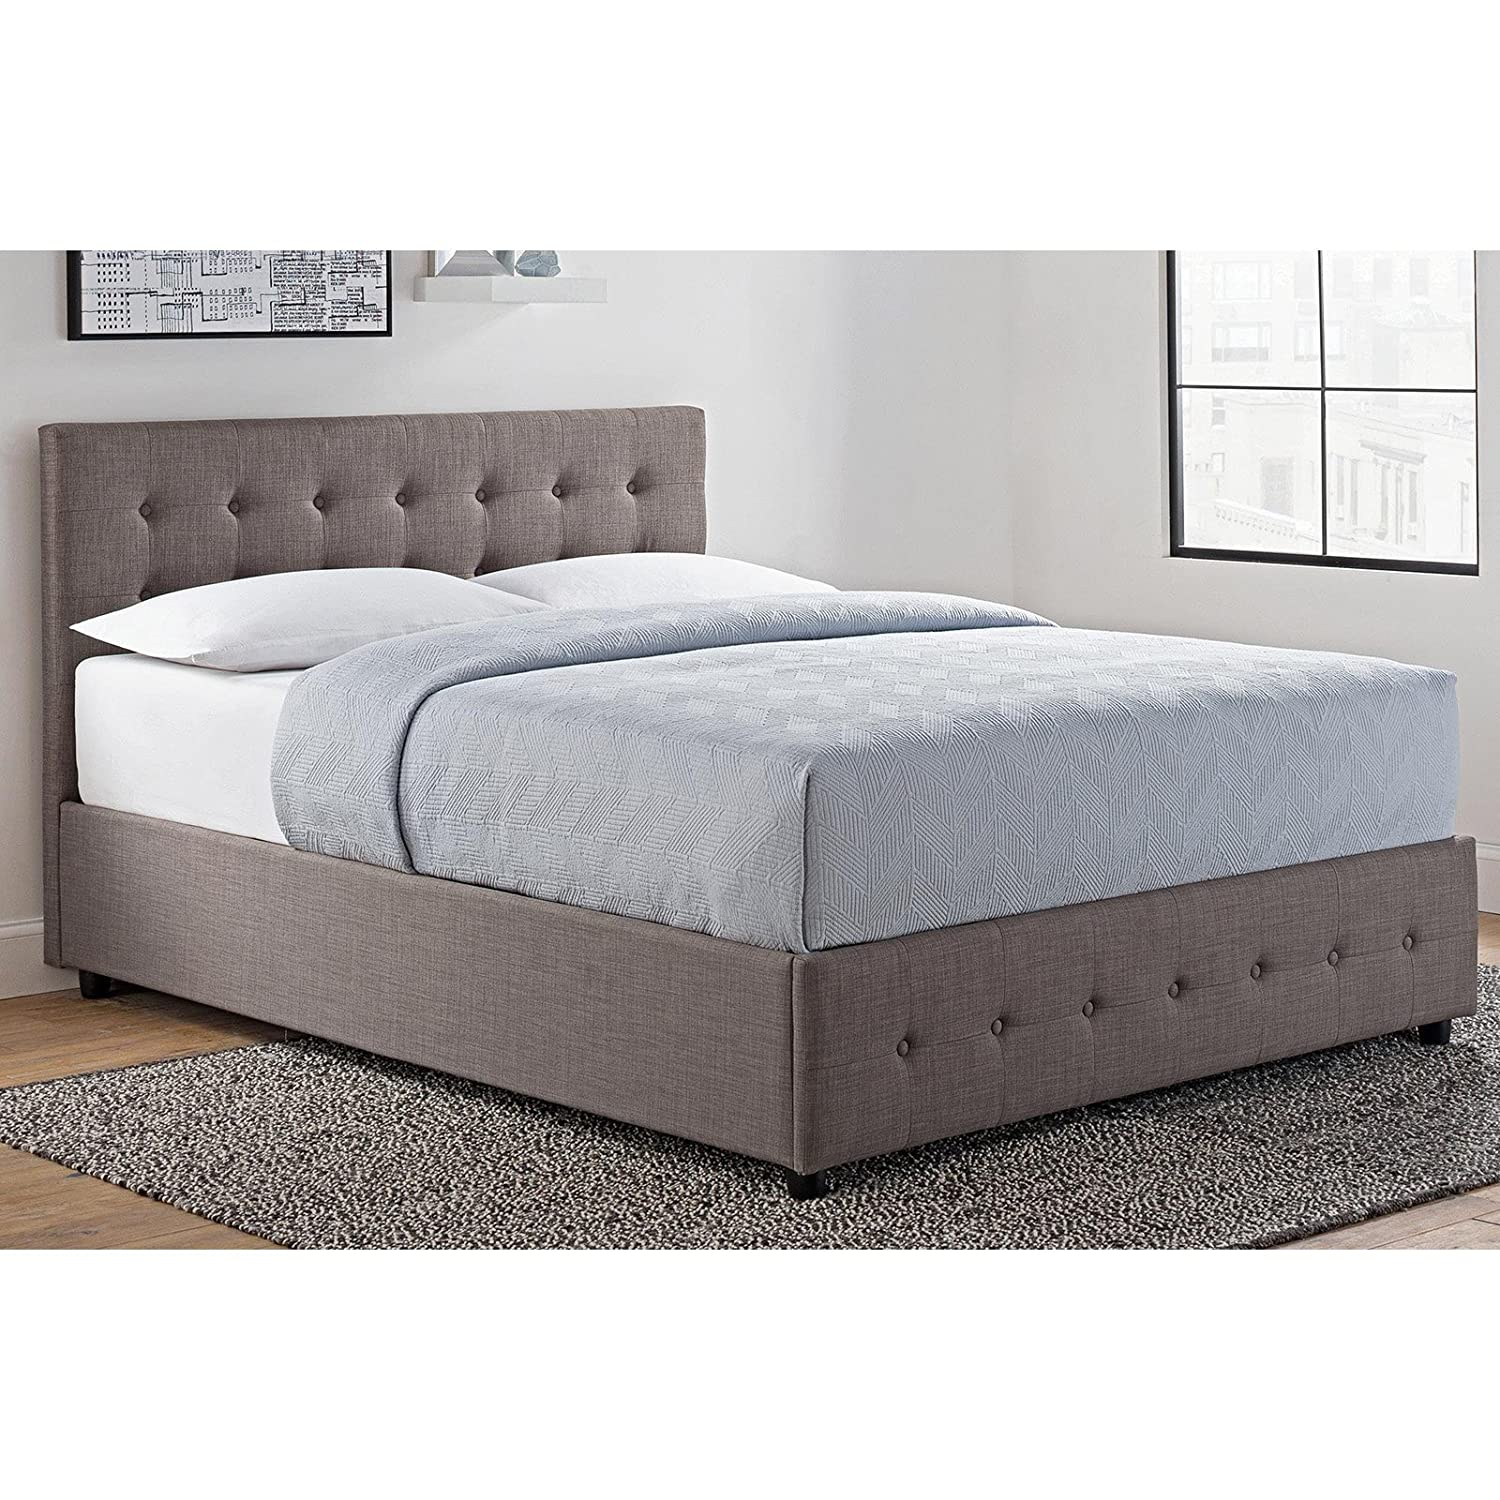 Amazoncom Upholstered Bed With Storage Under Bed Space Storage